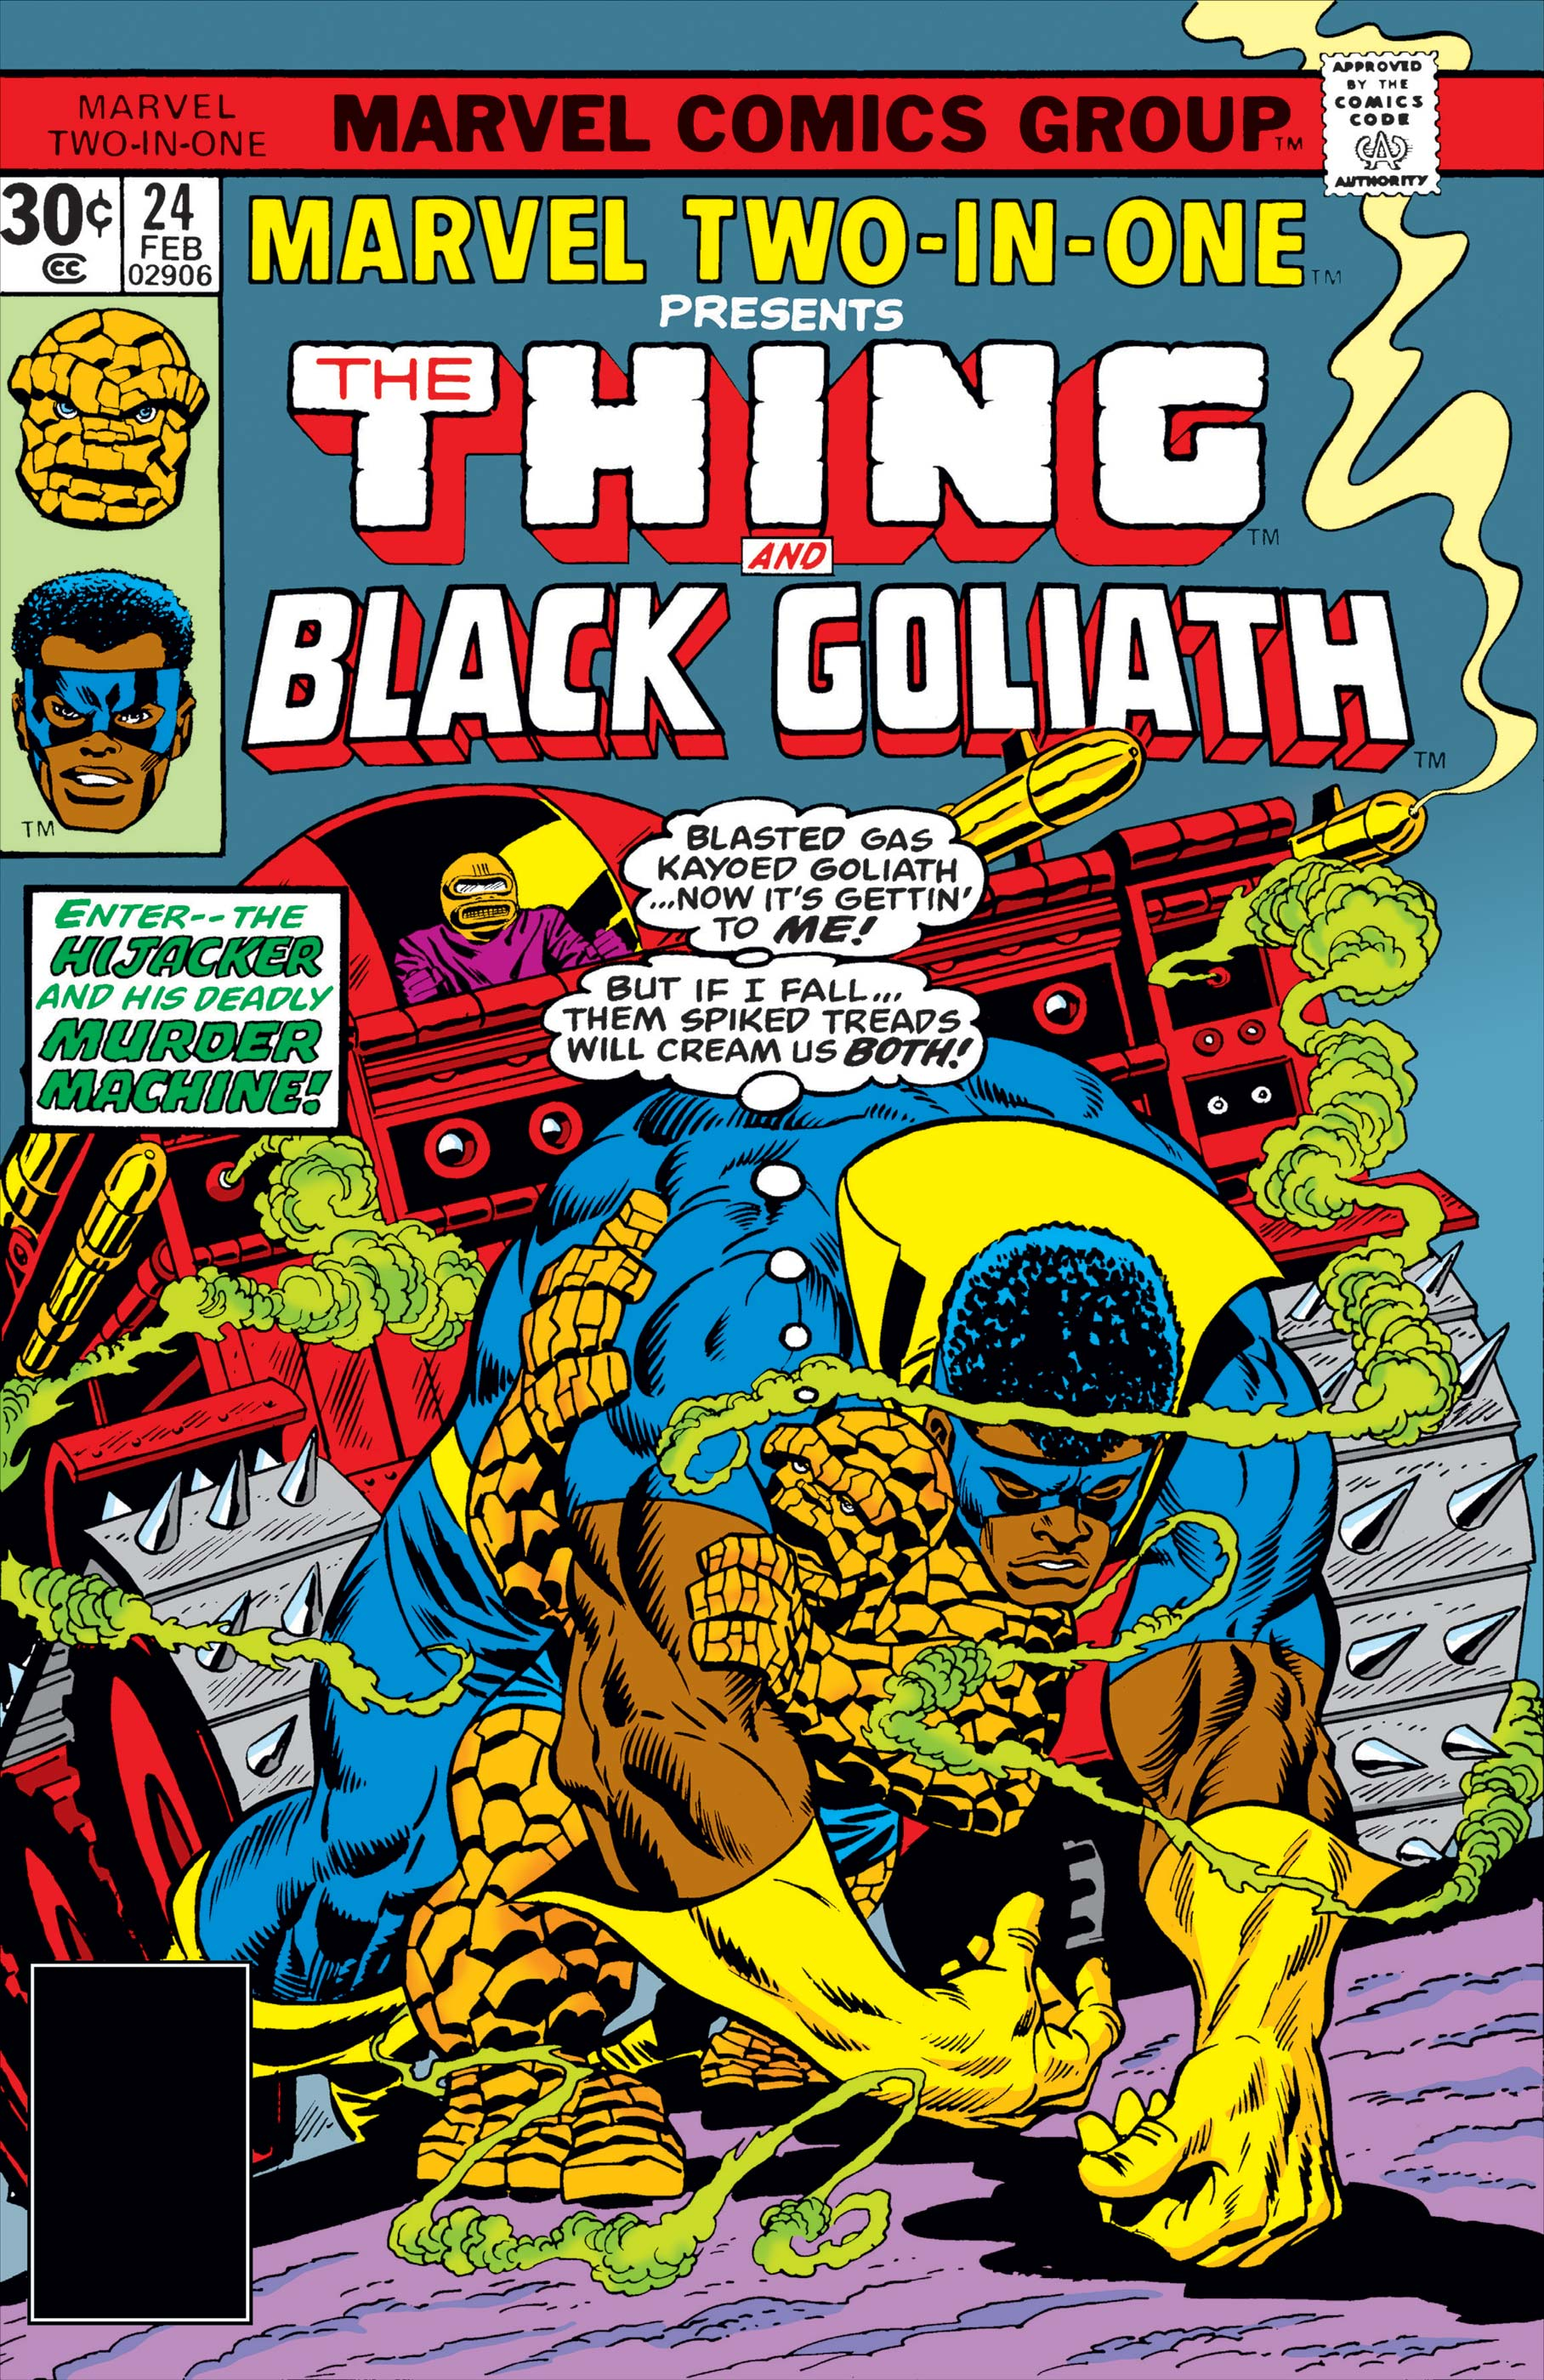 Marvel Two-in-One (1974) #24